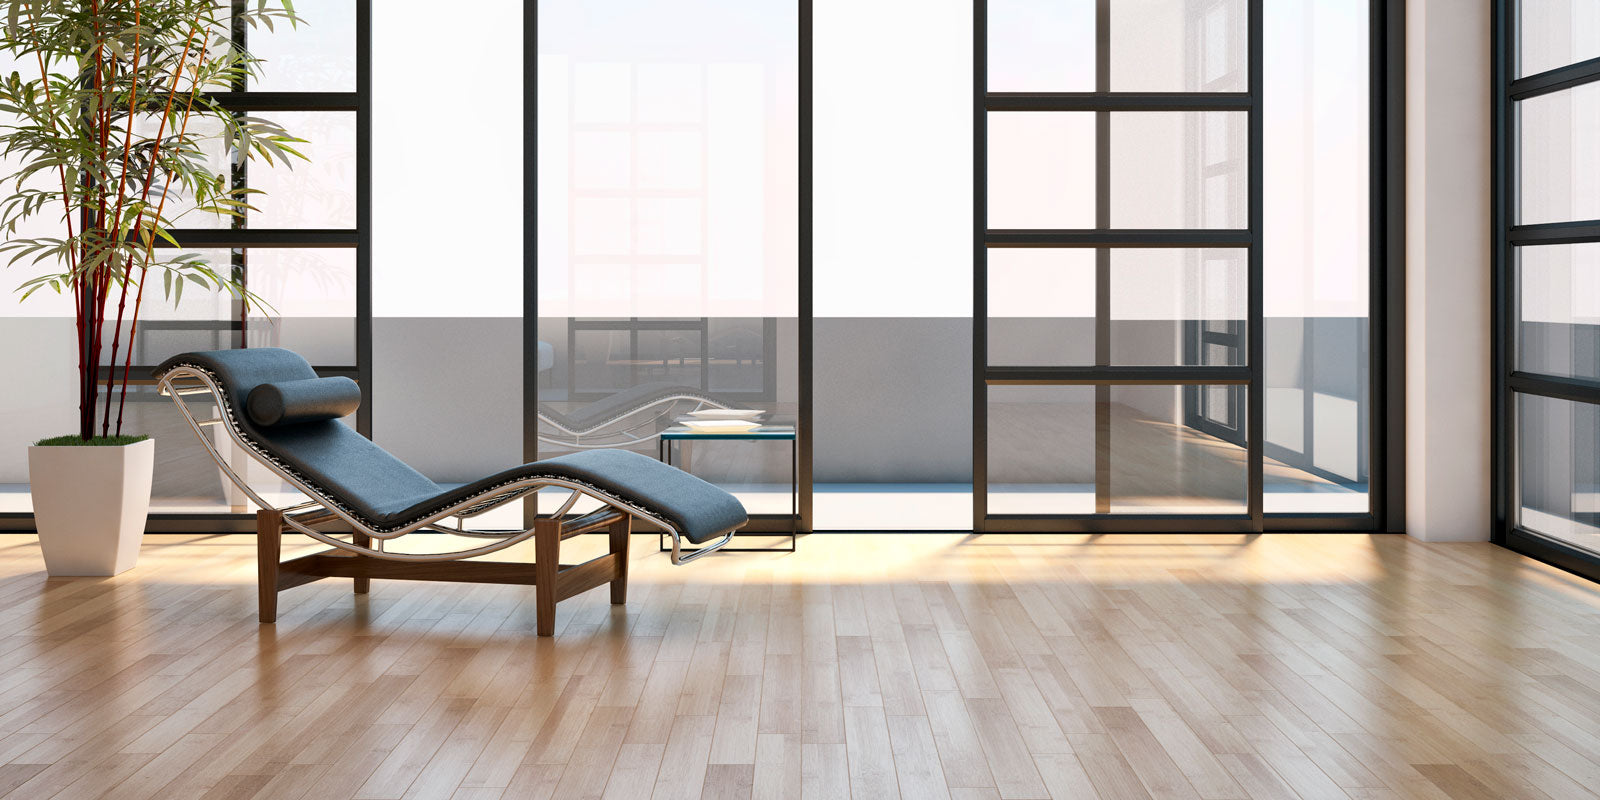 Top 7 Trends You Can Follow With Your Vinyl Flooring In 2021